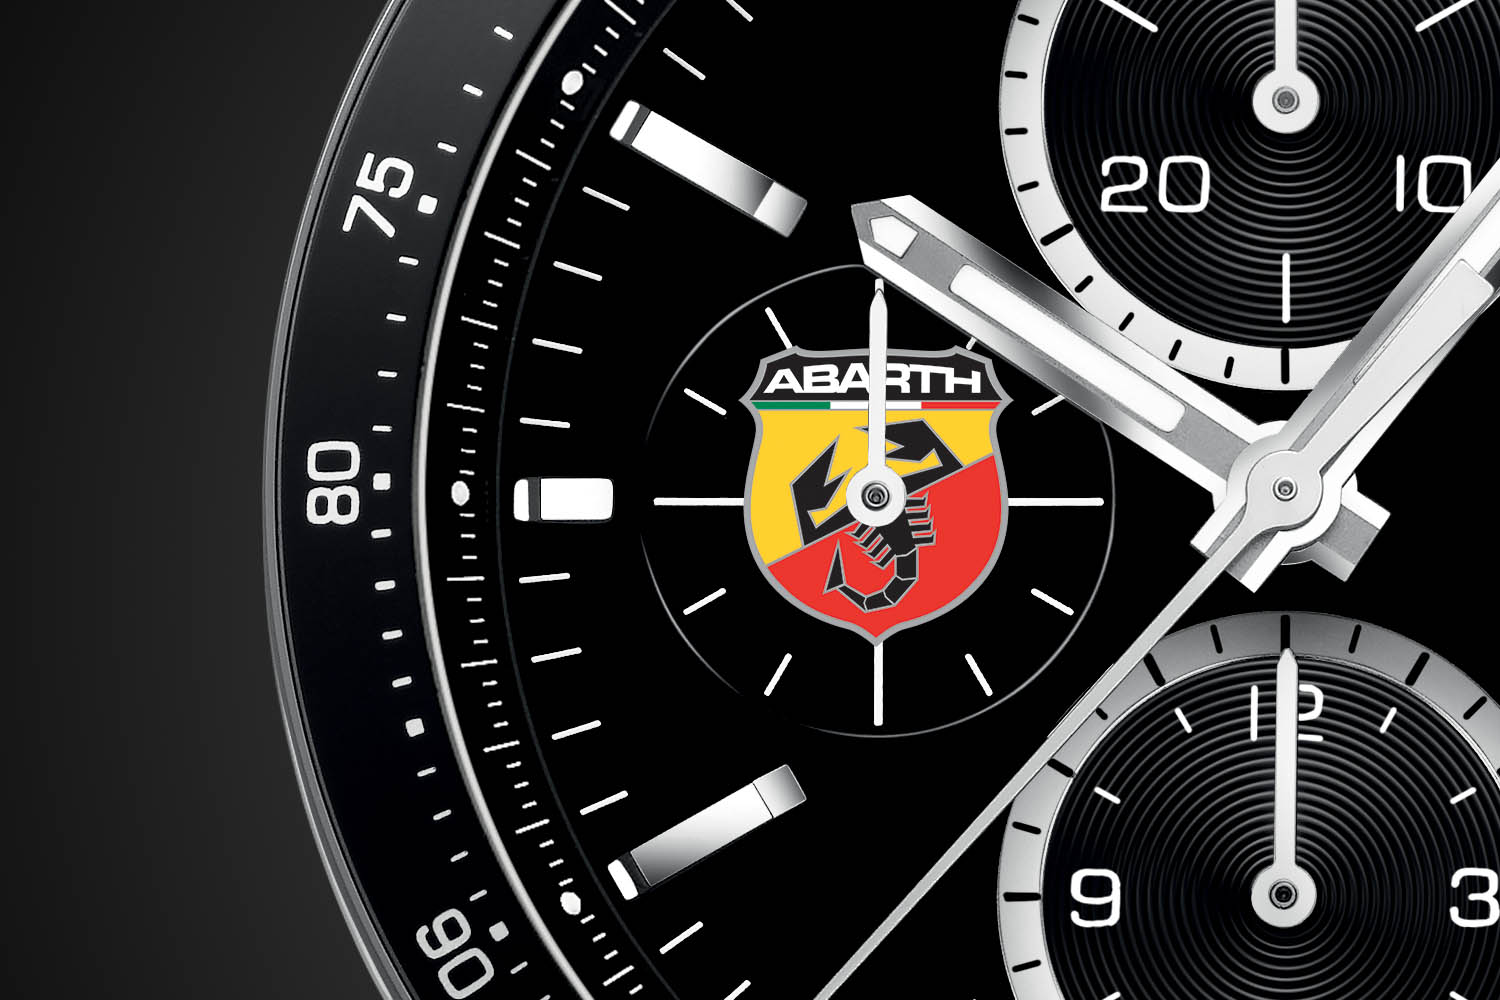 TAG Heuer and Abarth partner with the Abarth 595 Competizione by TAG